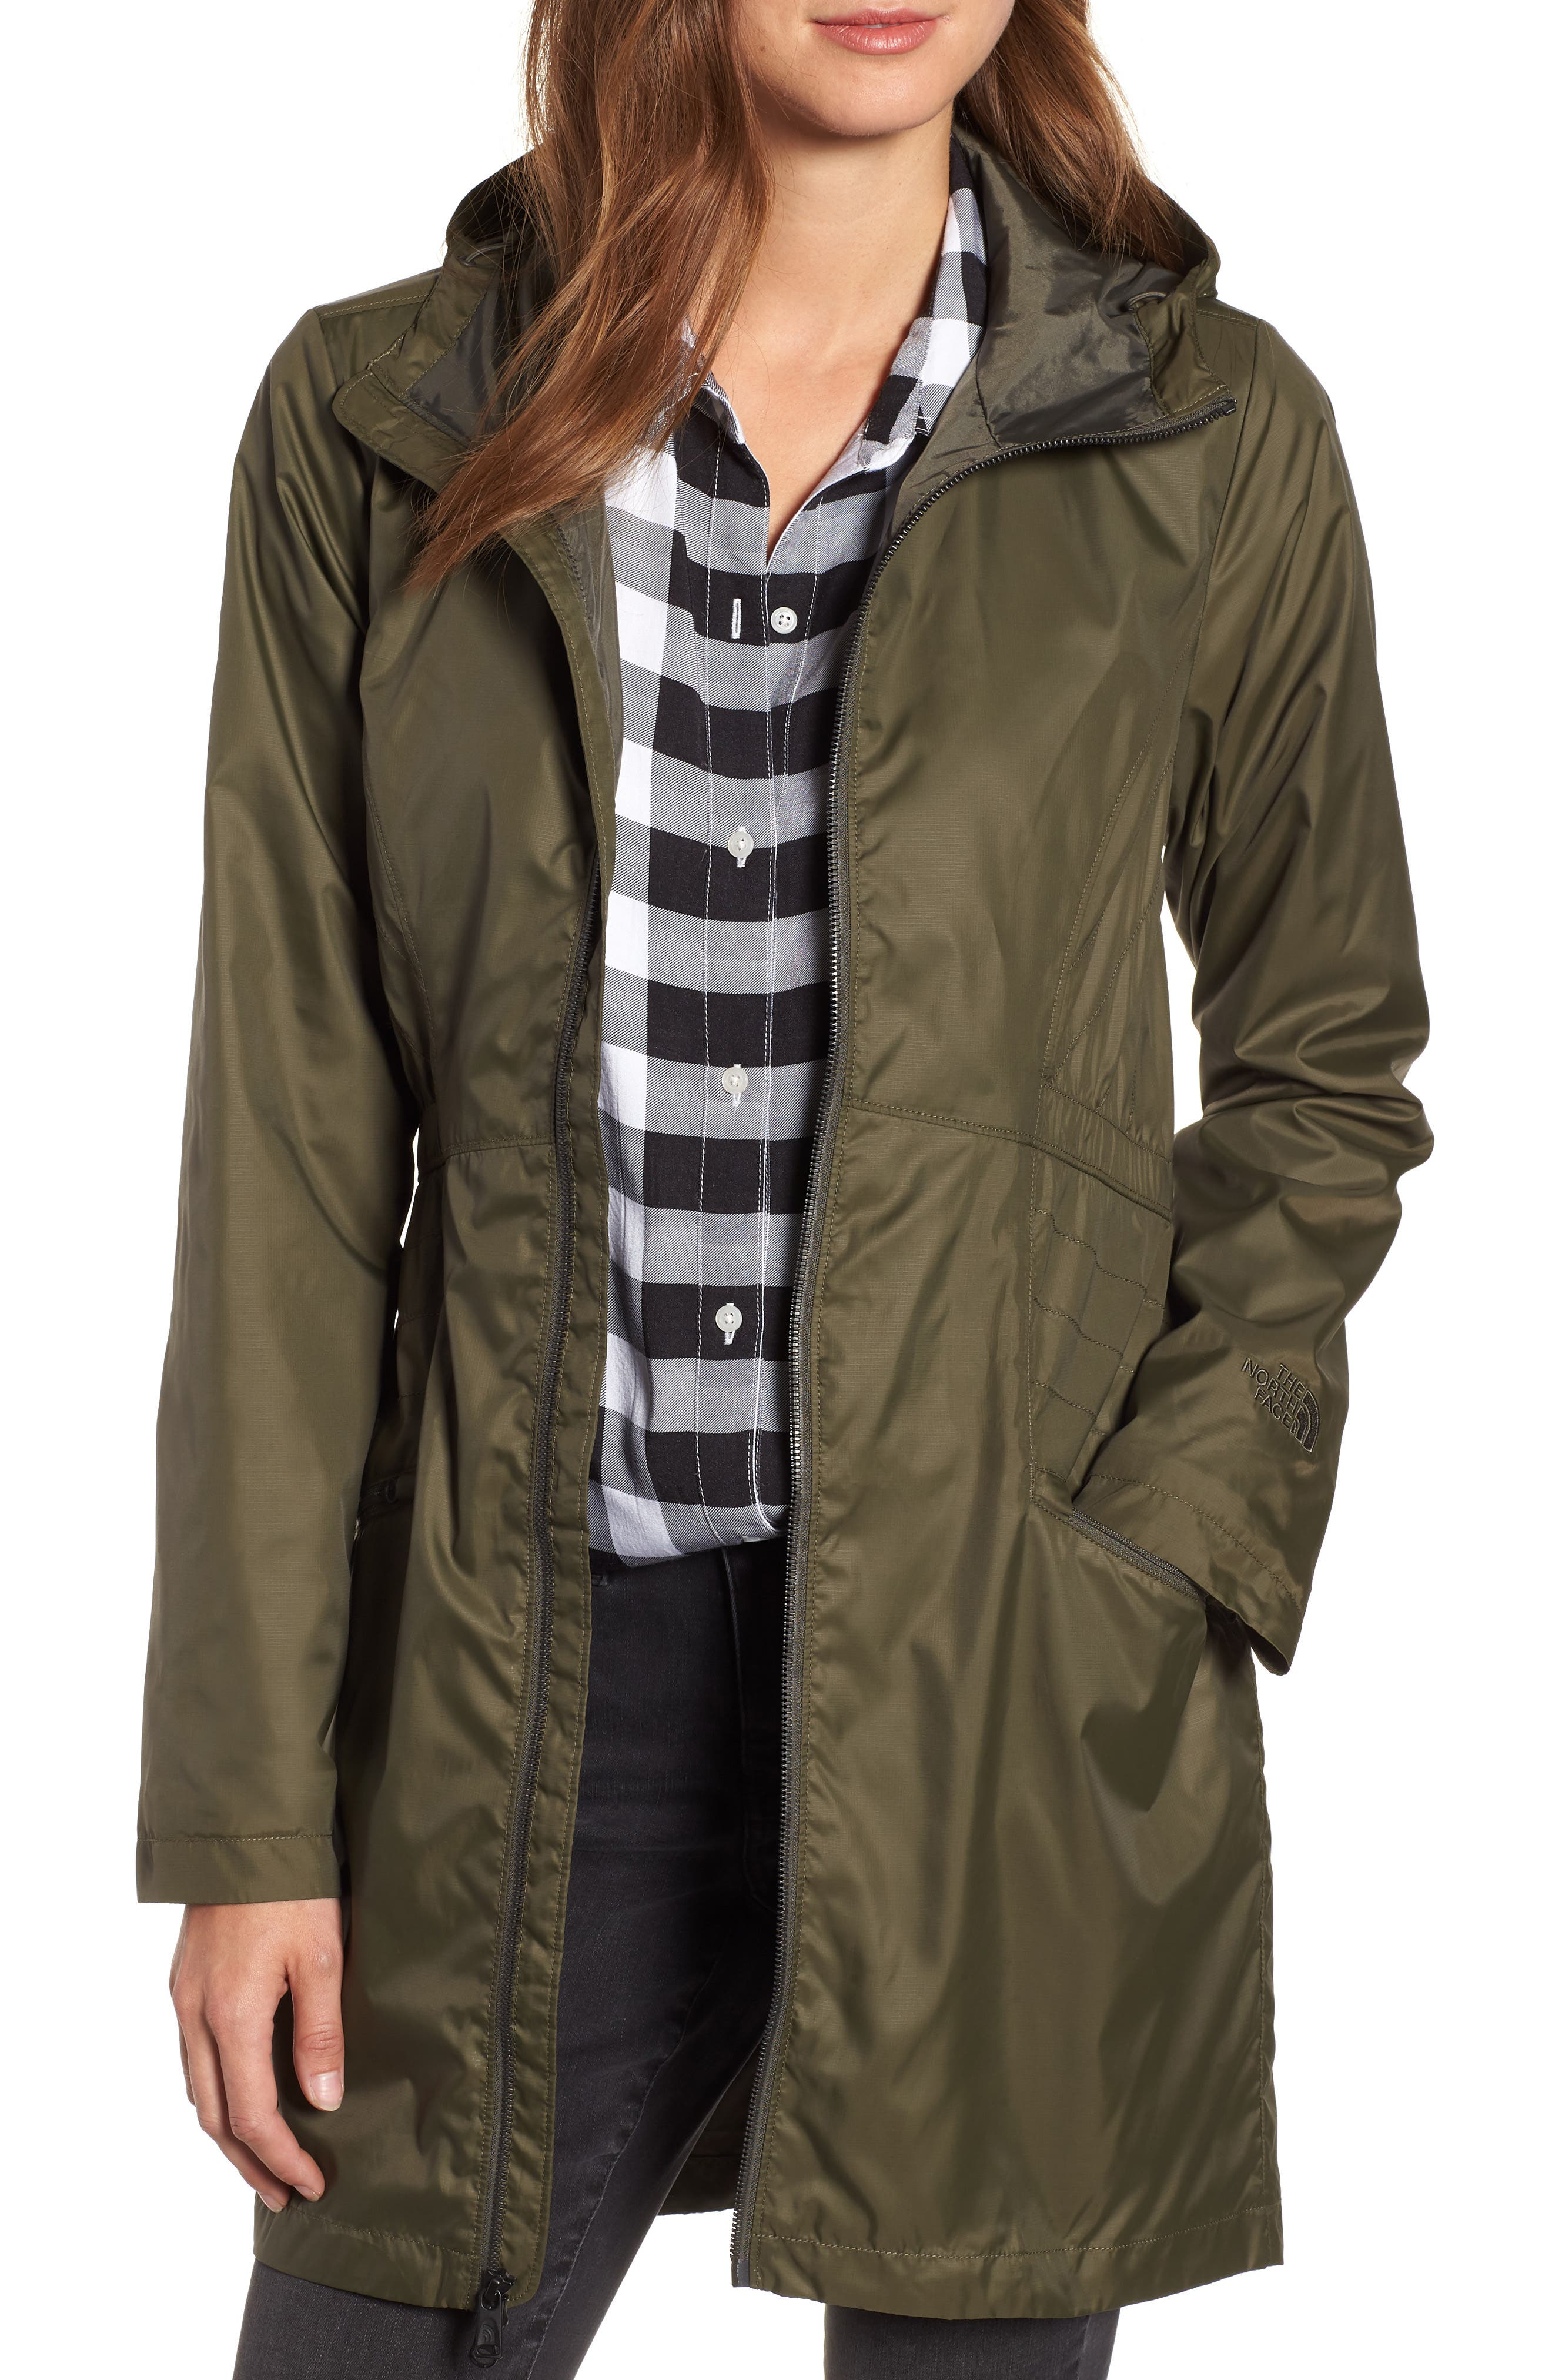 Rissy 2 Wind Resistant Jacket,                             Main thumbnail 1, color,                             NEW TAUPE GREEN